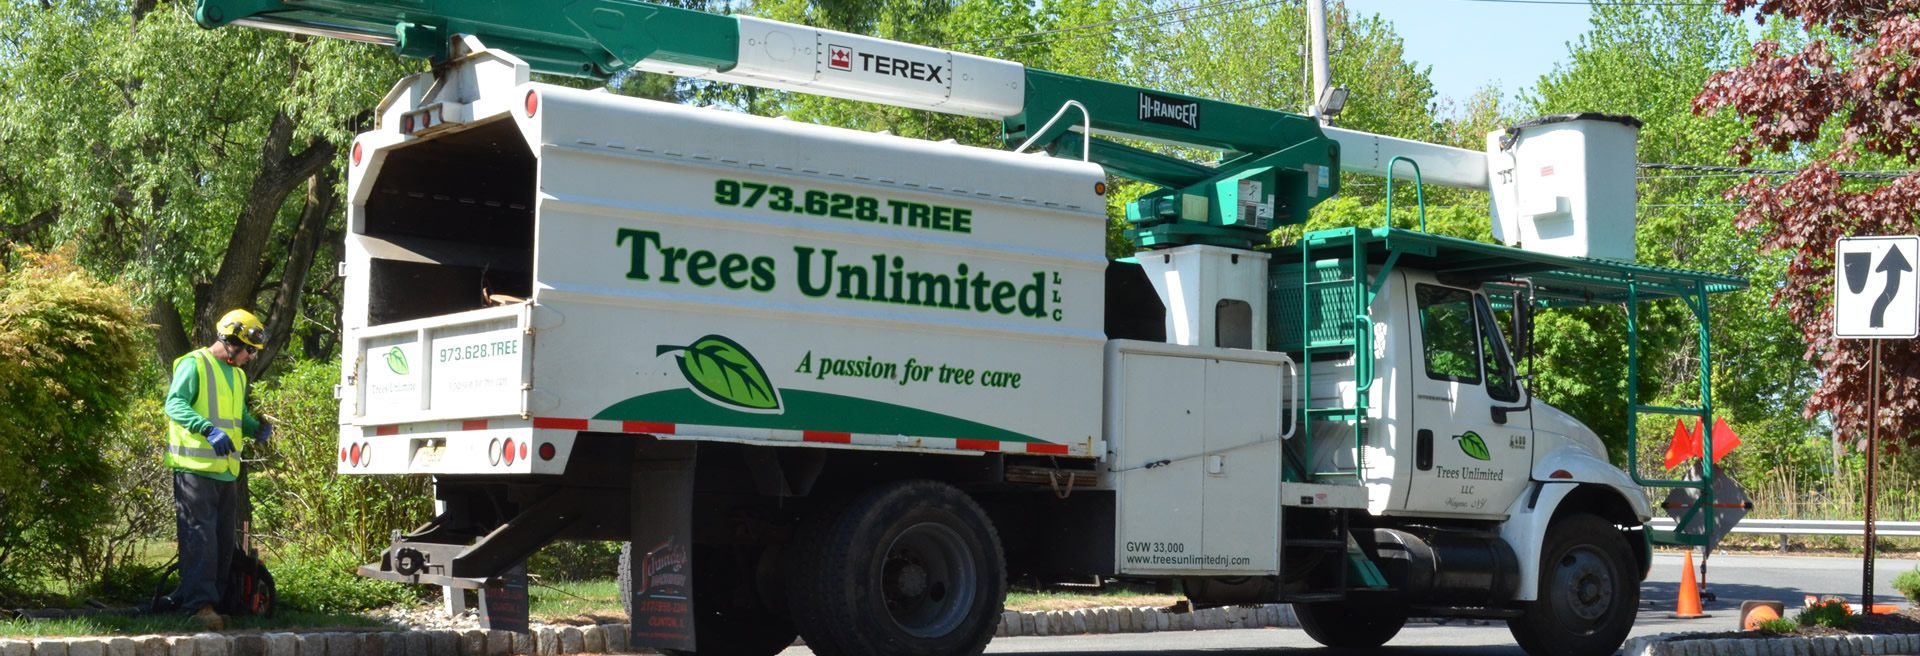 Trees Unlimited Vehicle and Staff Member